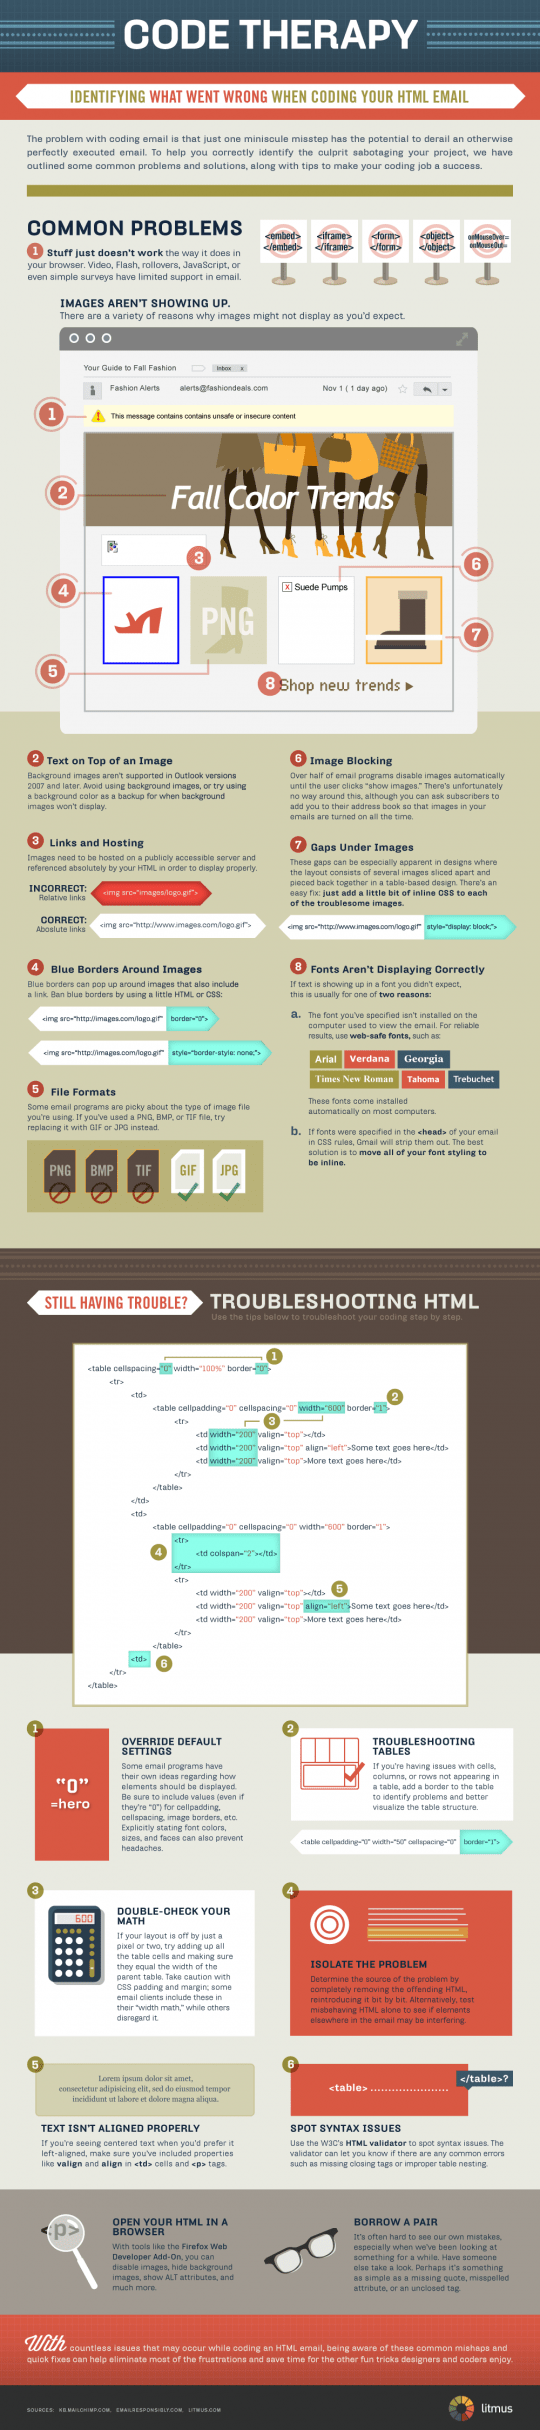 code-therapy-16-tips-for-troubleshooting-your-html-email_5040f488d59da